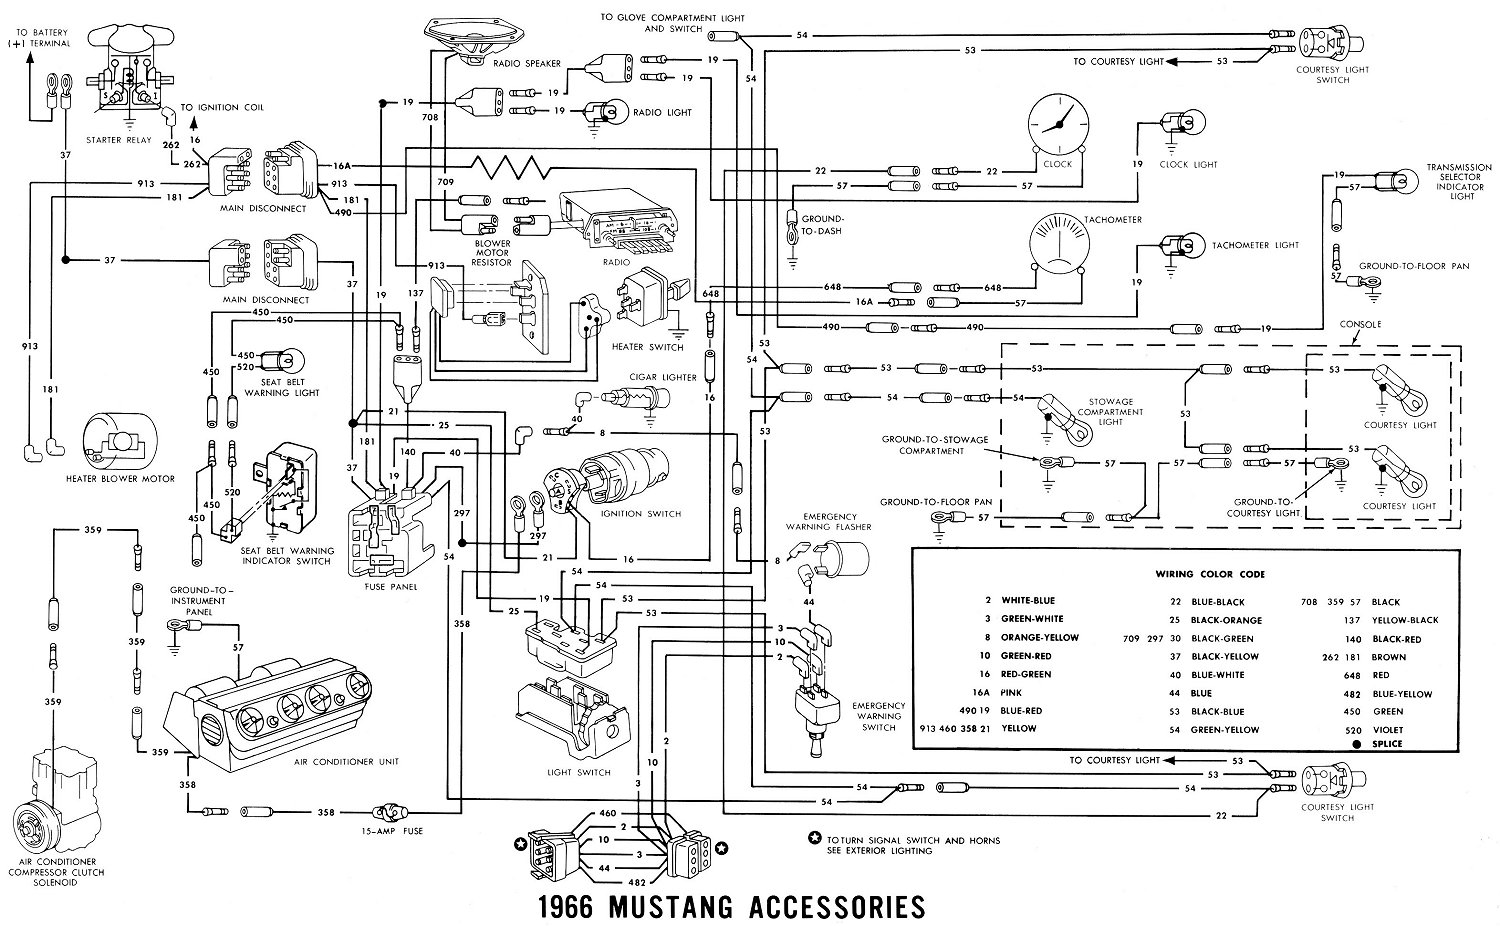 wiring diagram for 1971 mustang wiring diagram local 1970 Mustang Solenoid Wiring Diagram